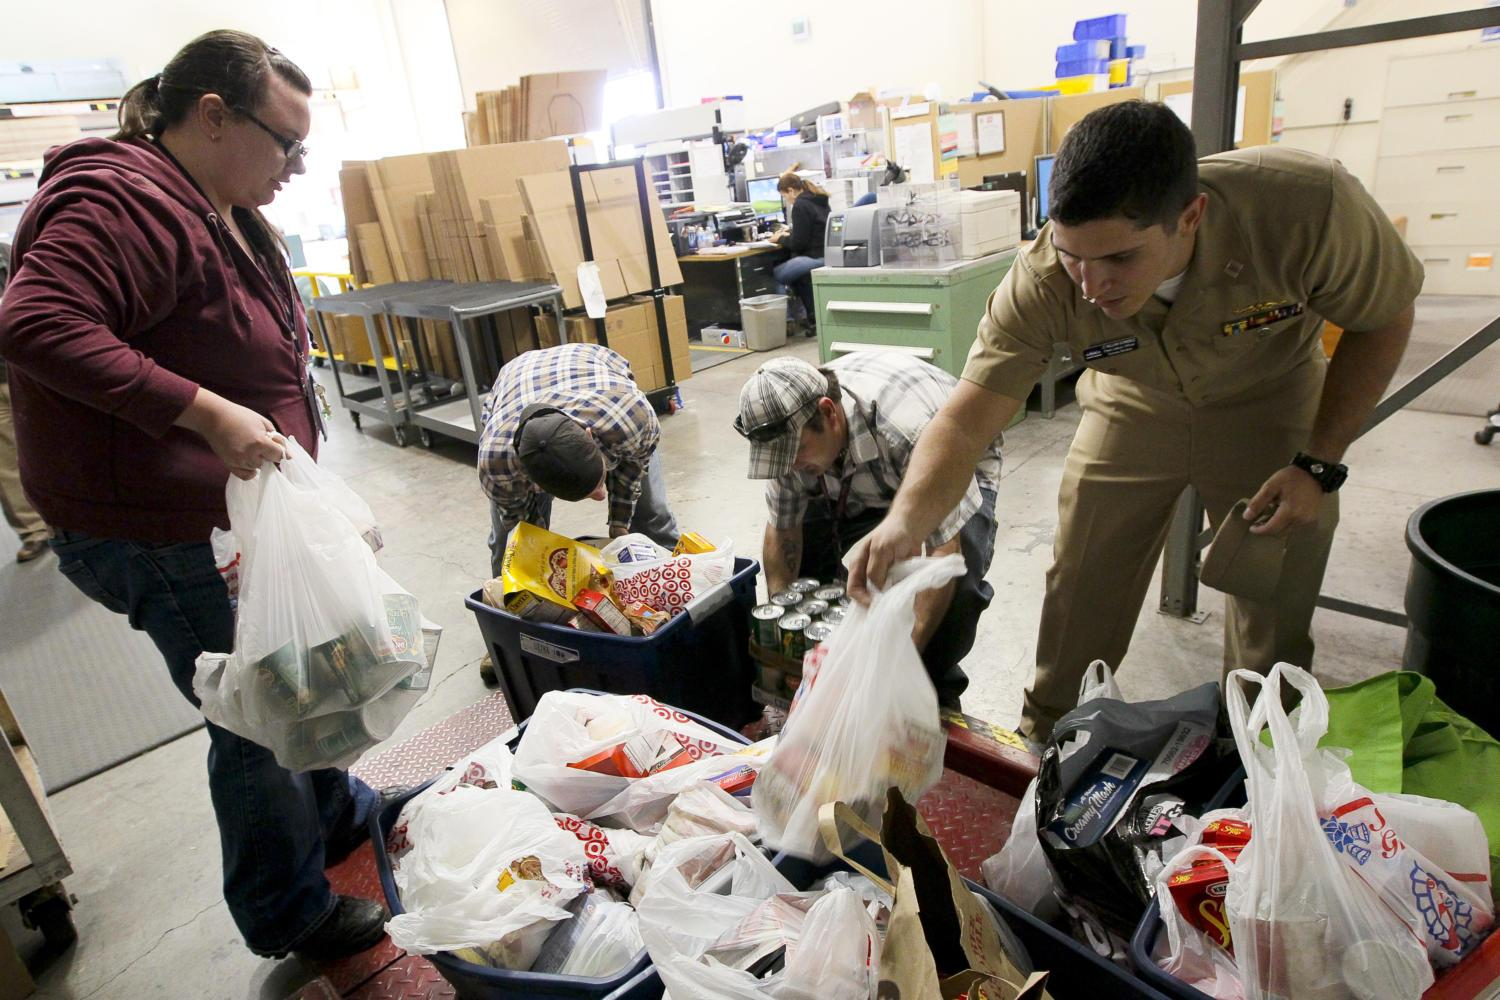 Food drive donations, like these for the Thanksgiving US Navy food drive, can make a big impact but can also overwhelm charities.